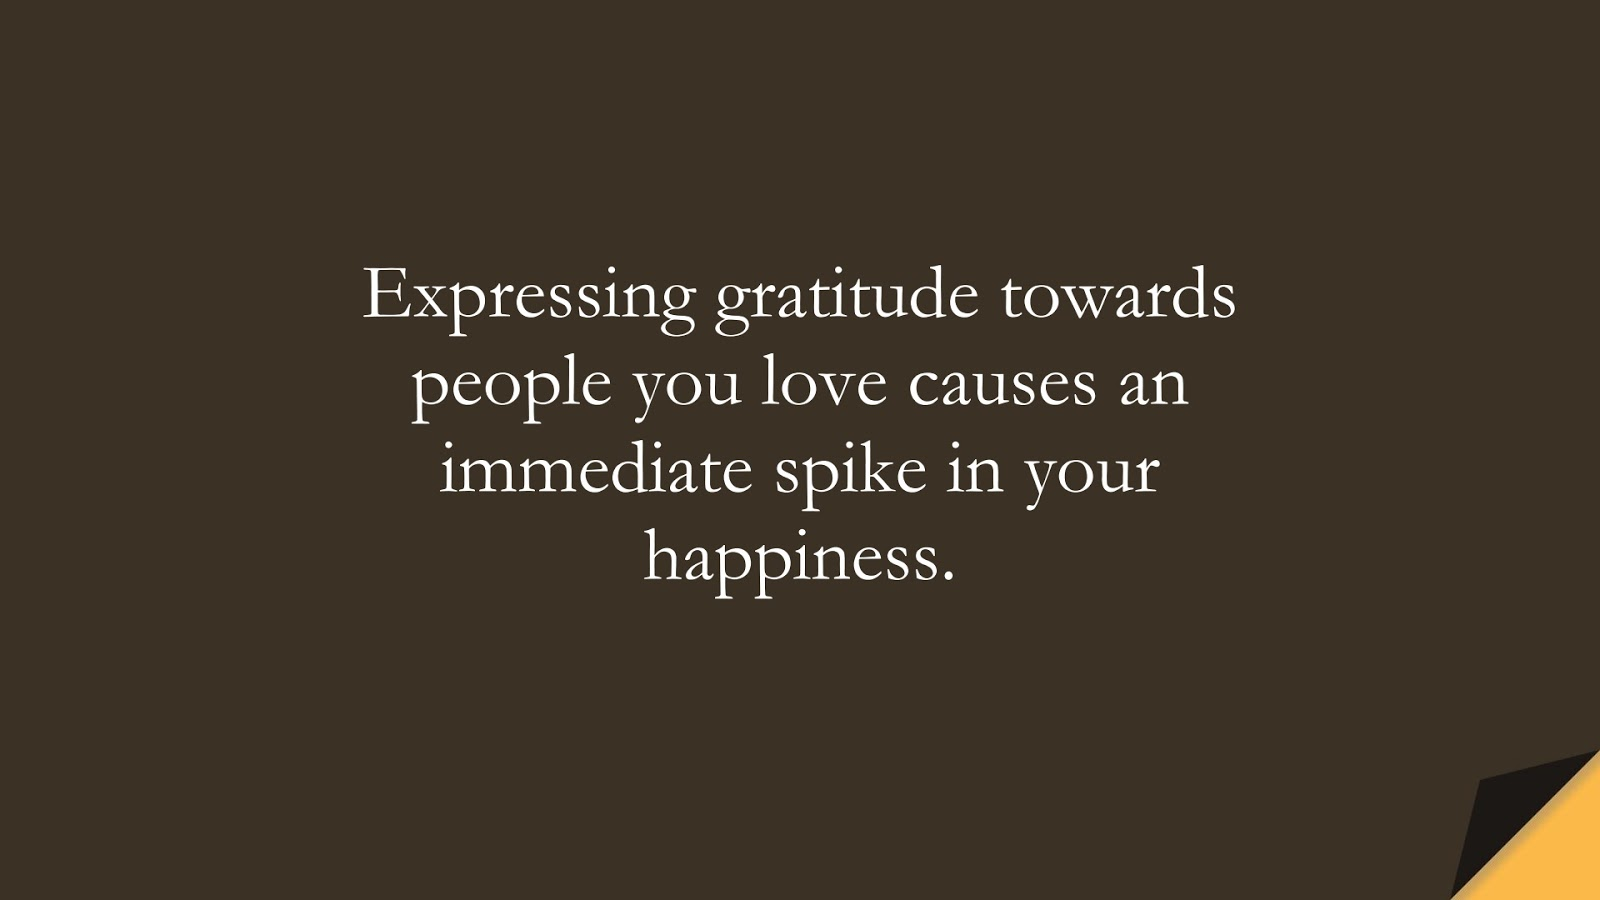 Expressing gratitude towards people you love causes an immediate spike in your happiness.FALSE